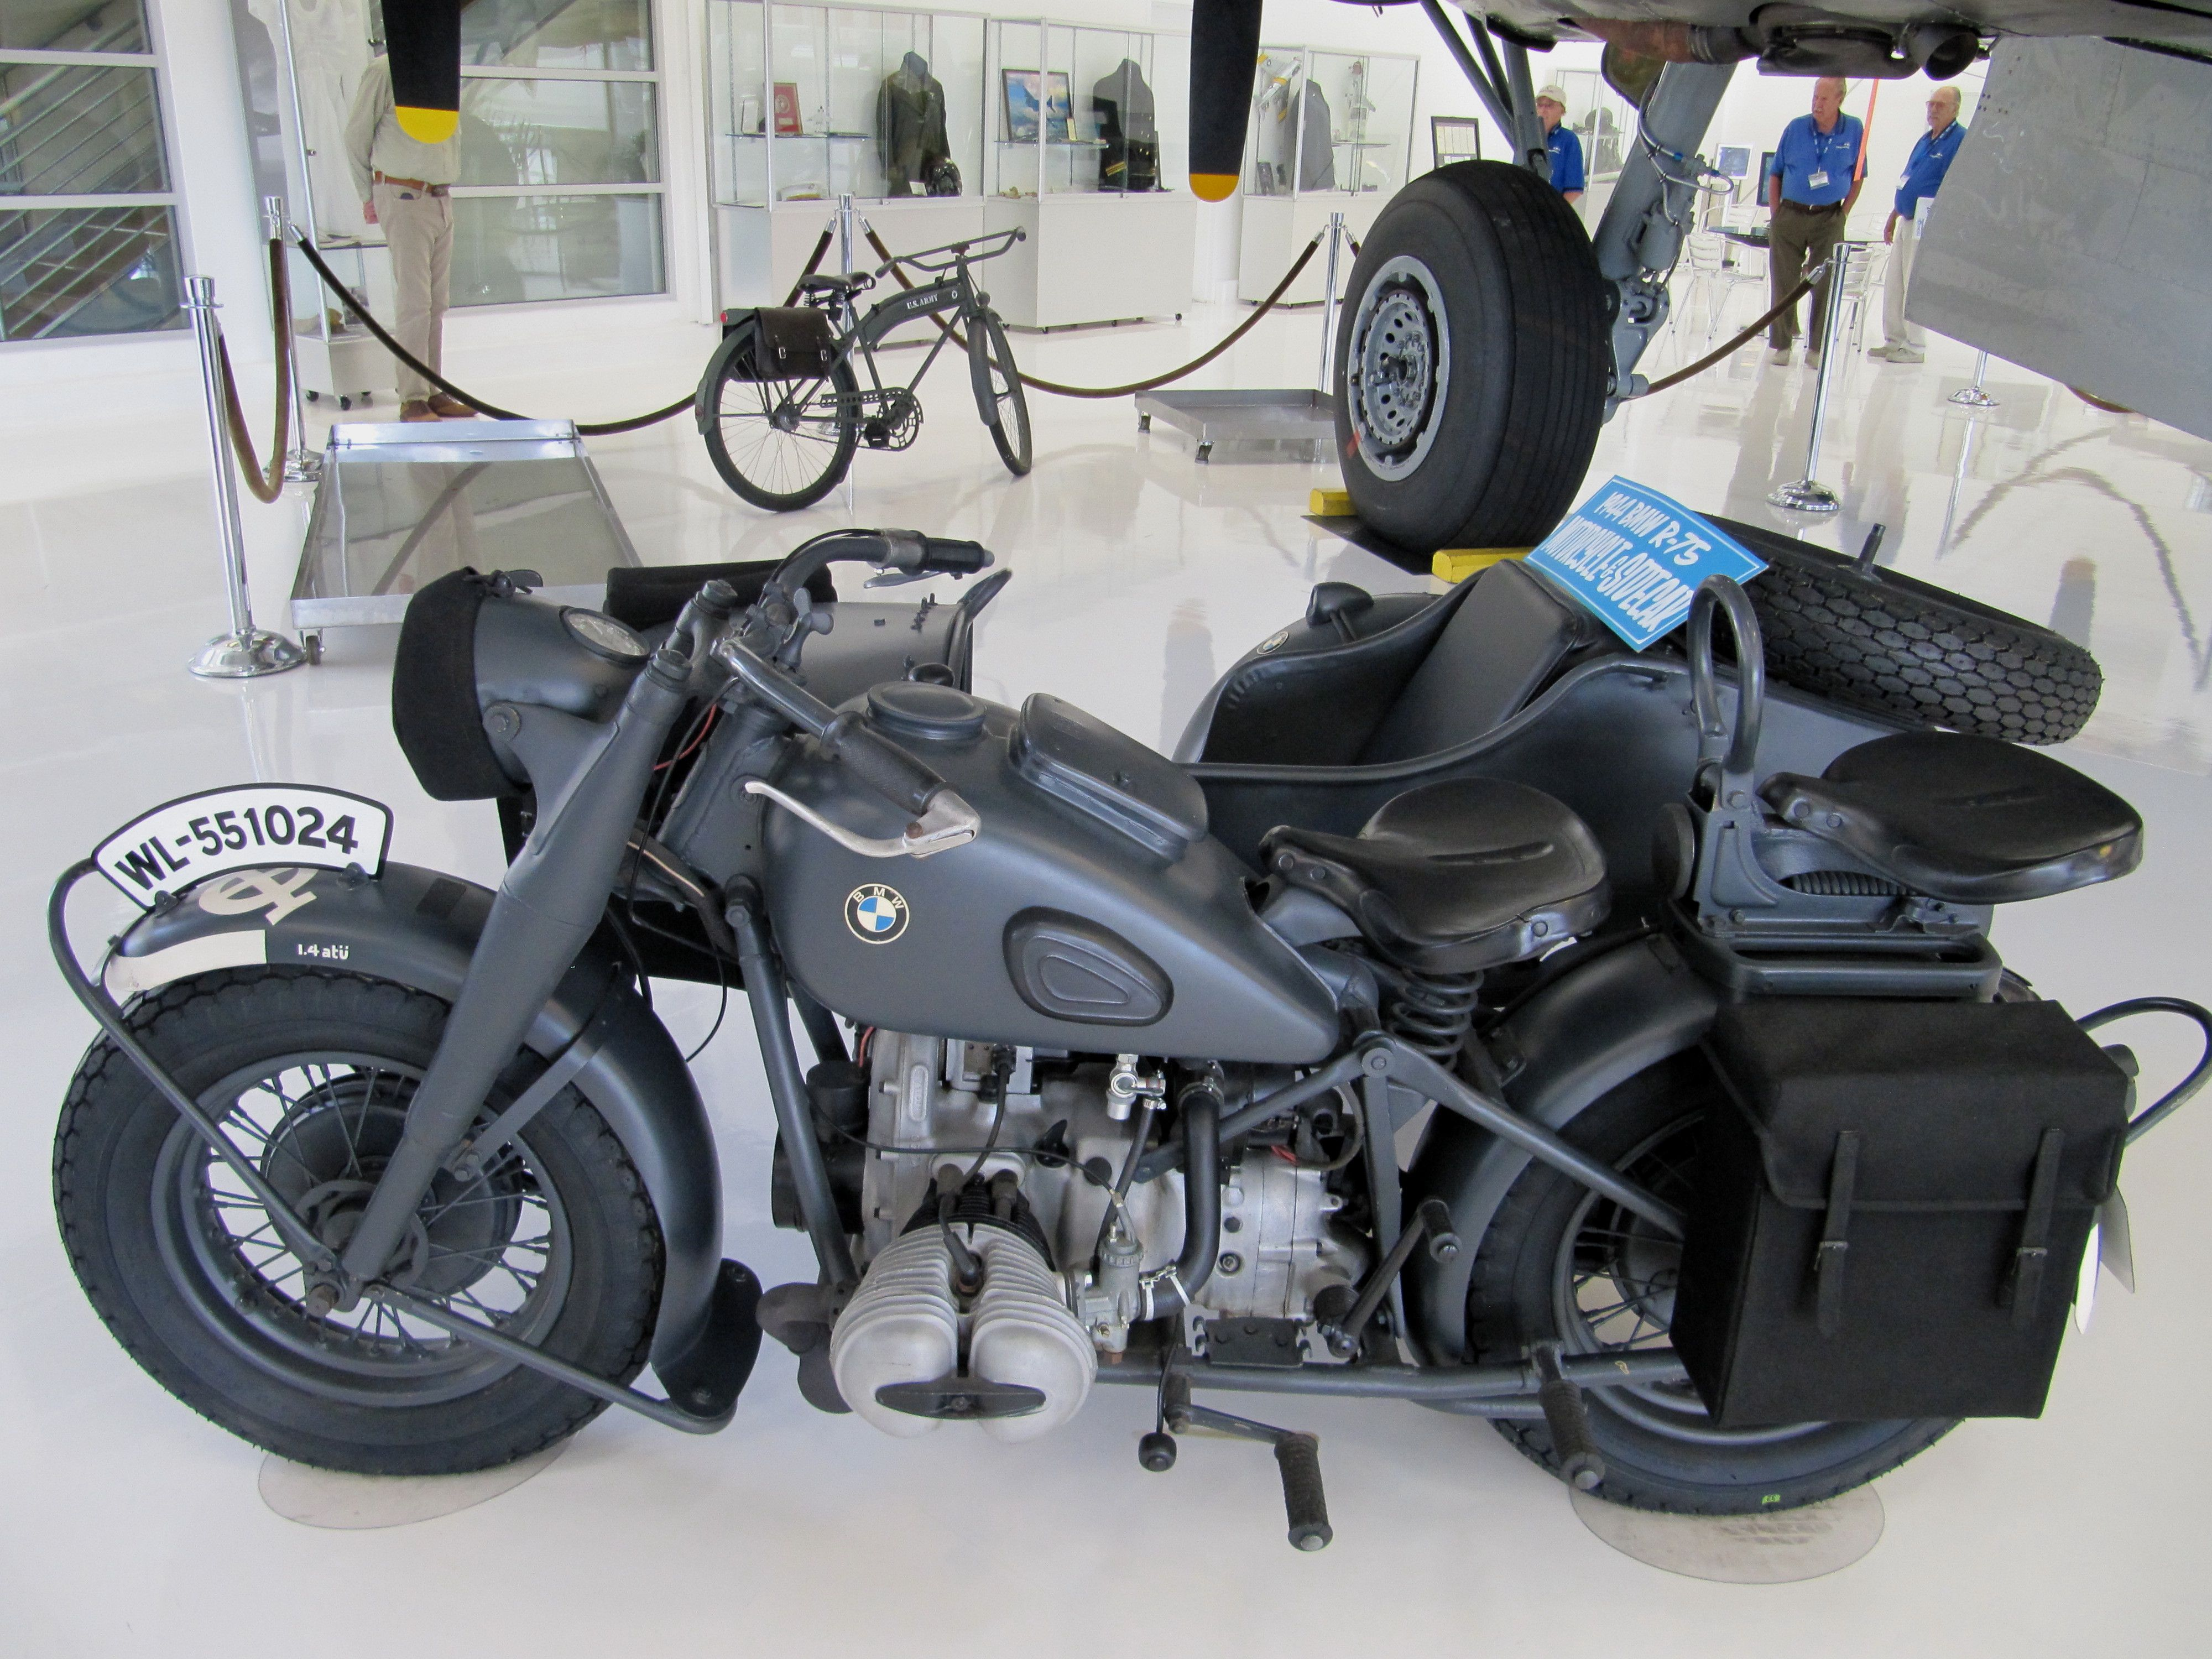 Pin By Dale Waldo Landscape Architect On Cars And Bikes Bmw Vintage Military Motorcycle Motorcycle Sidecar